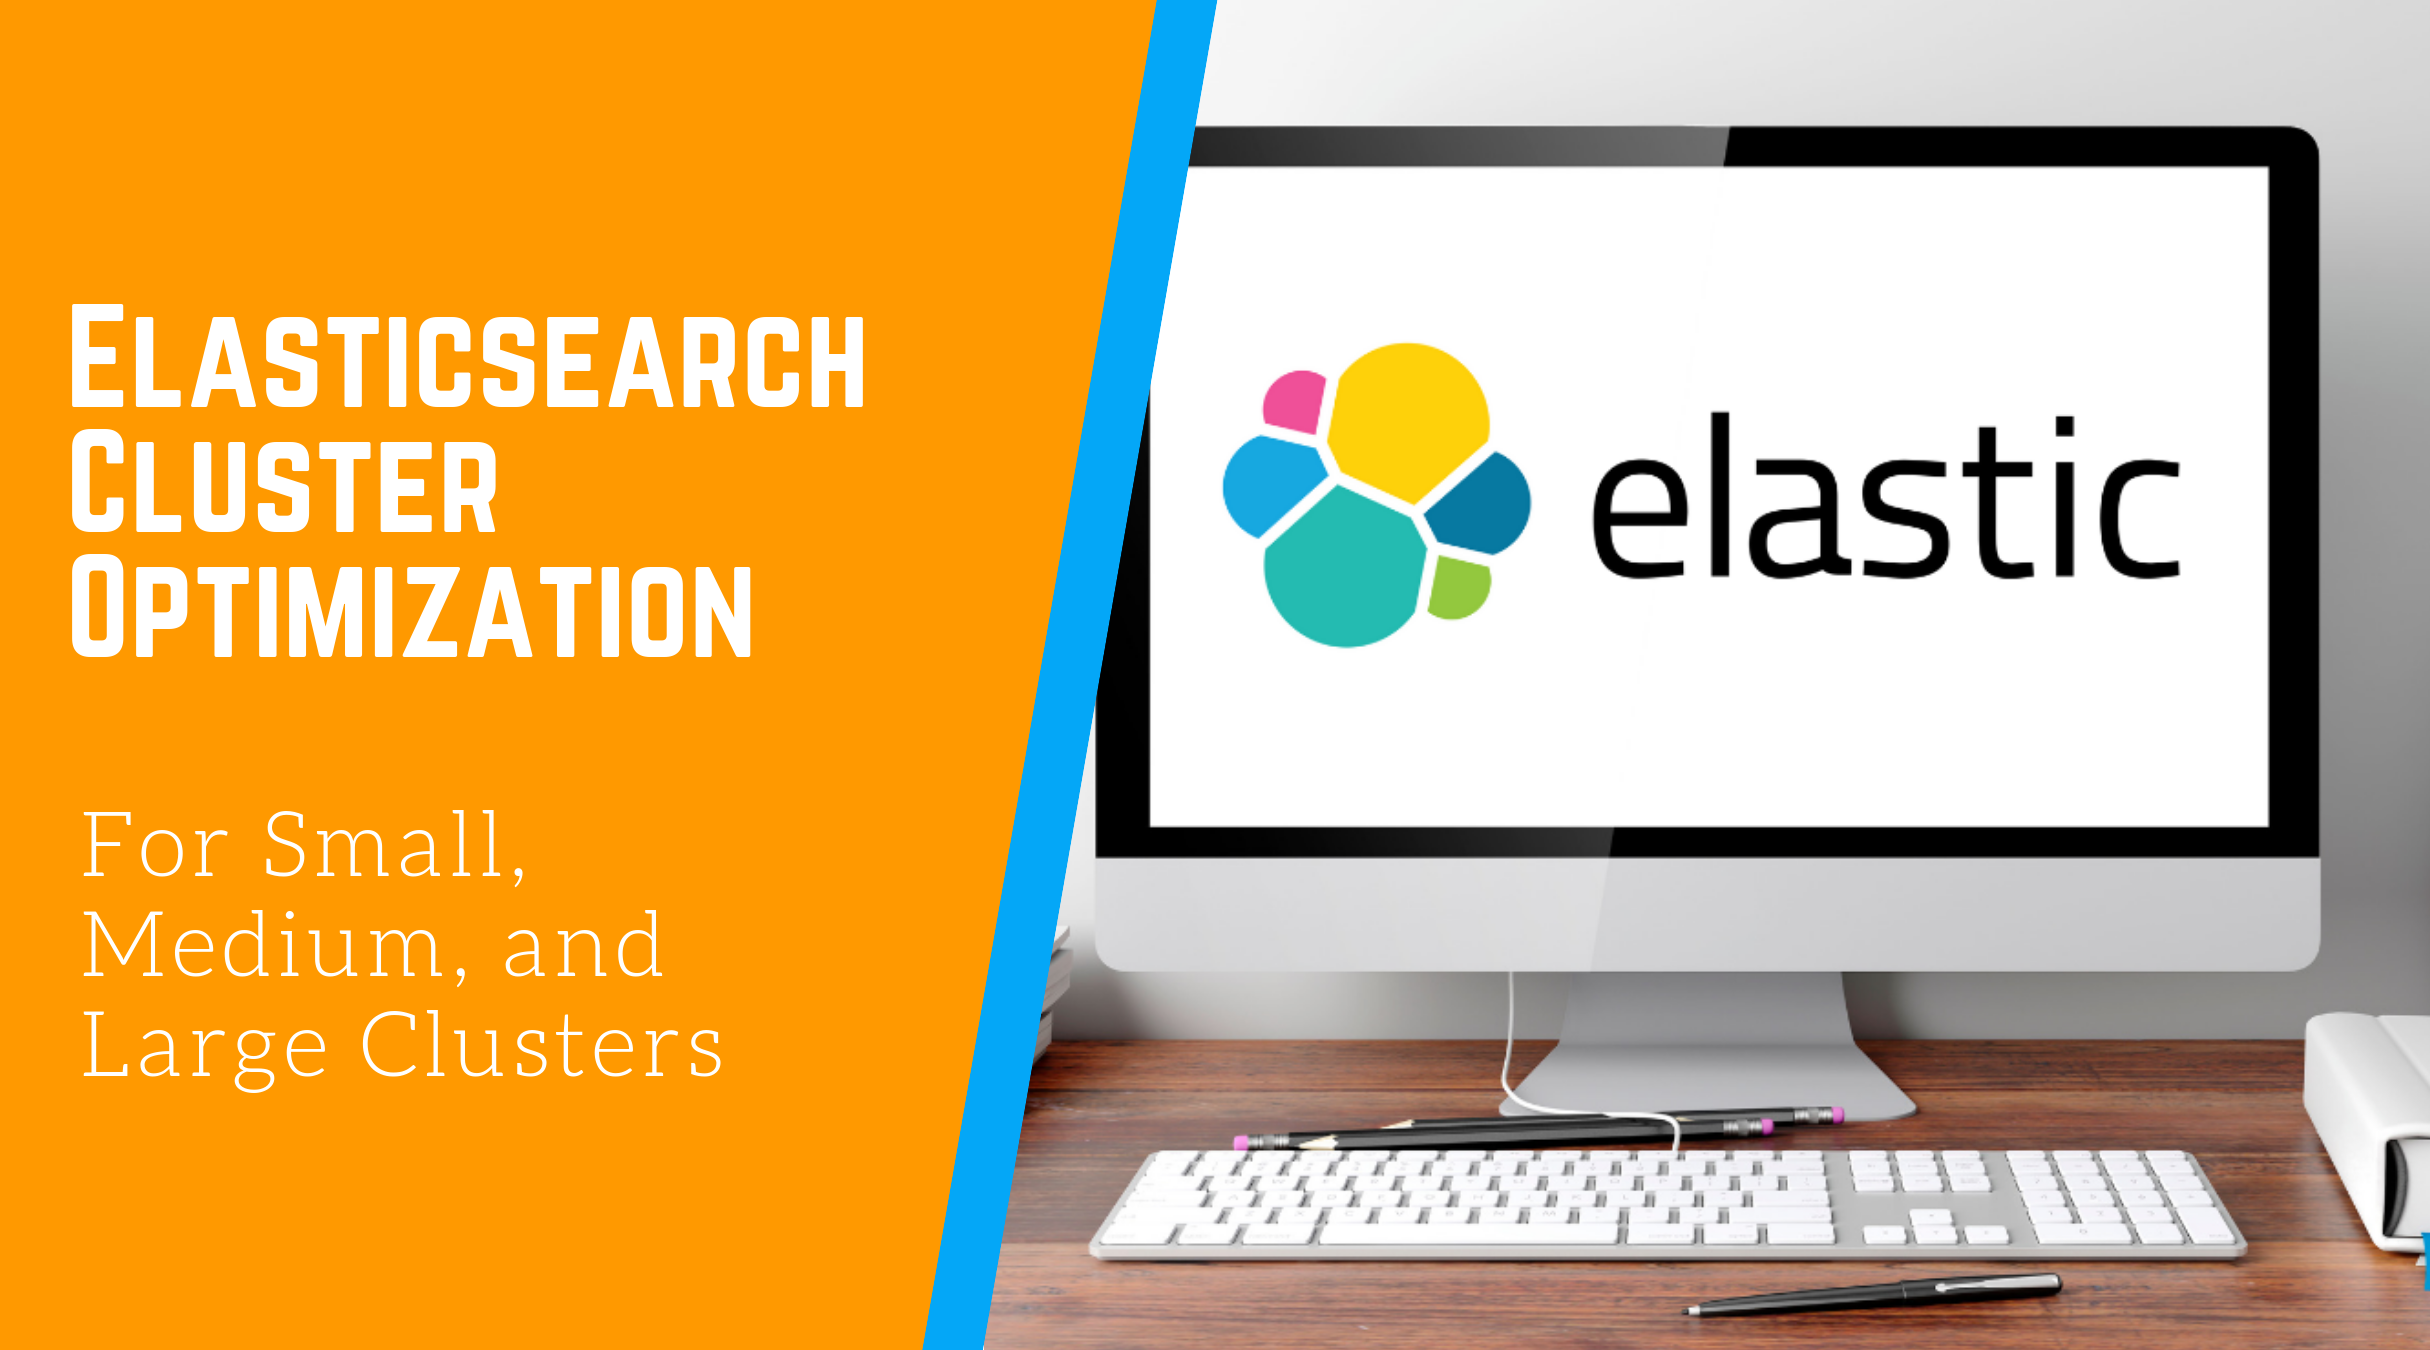 Elasticsearch Optimization for Small, Medium, and Large Clusters